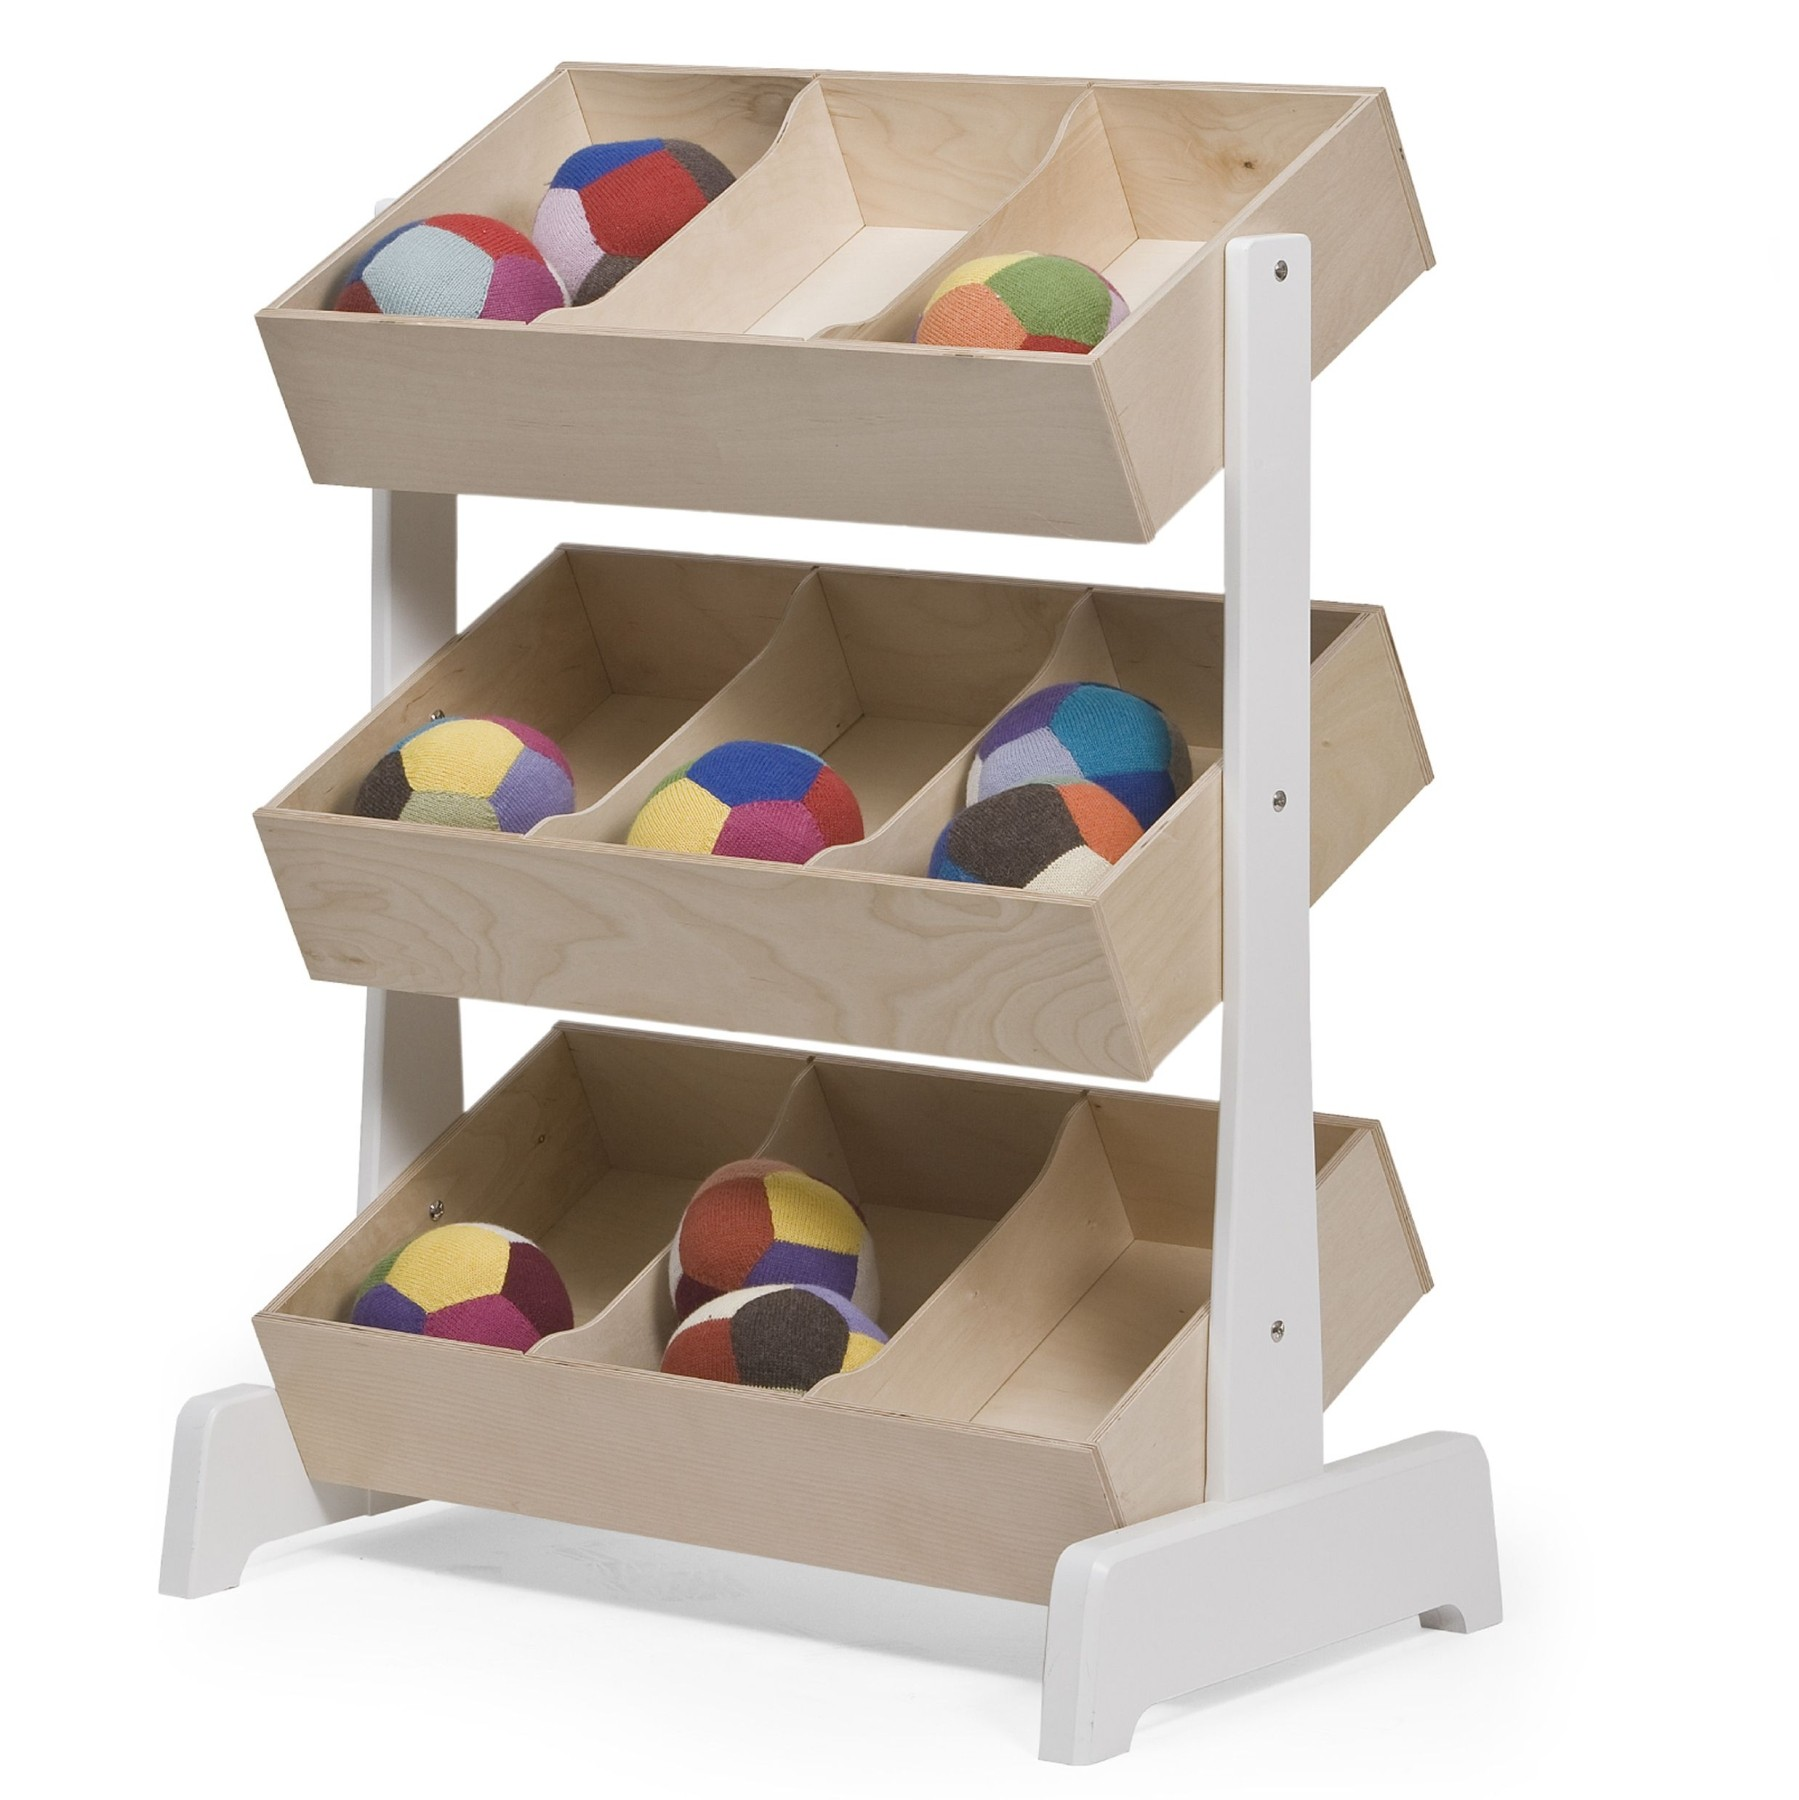 oeuf nyc toy storage design storage for children design furniture -